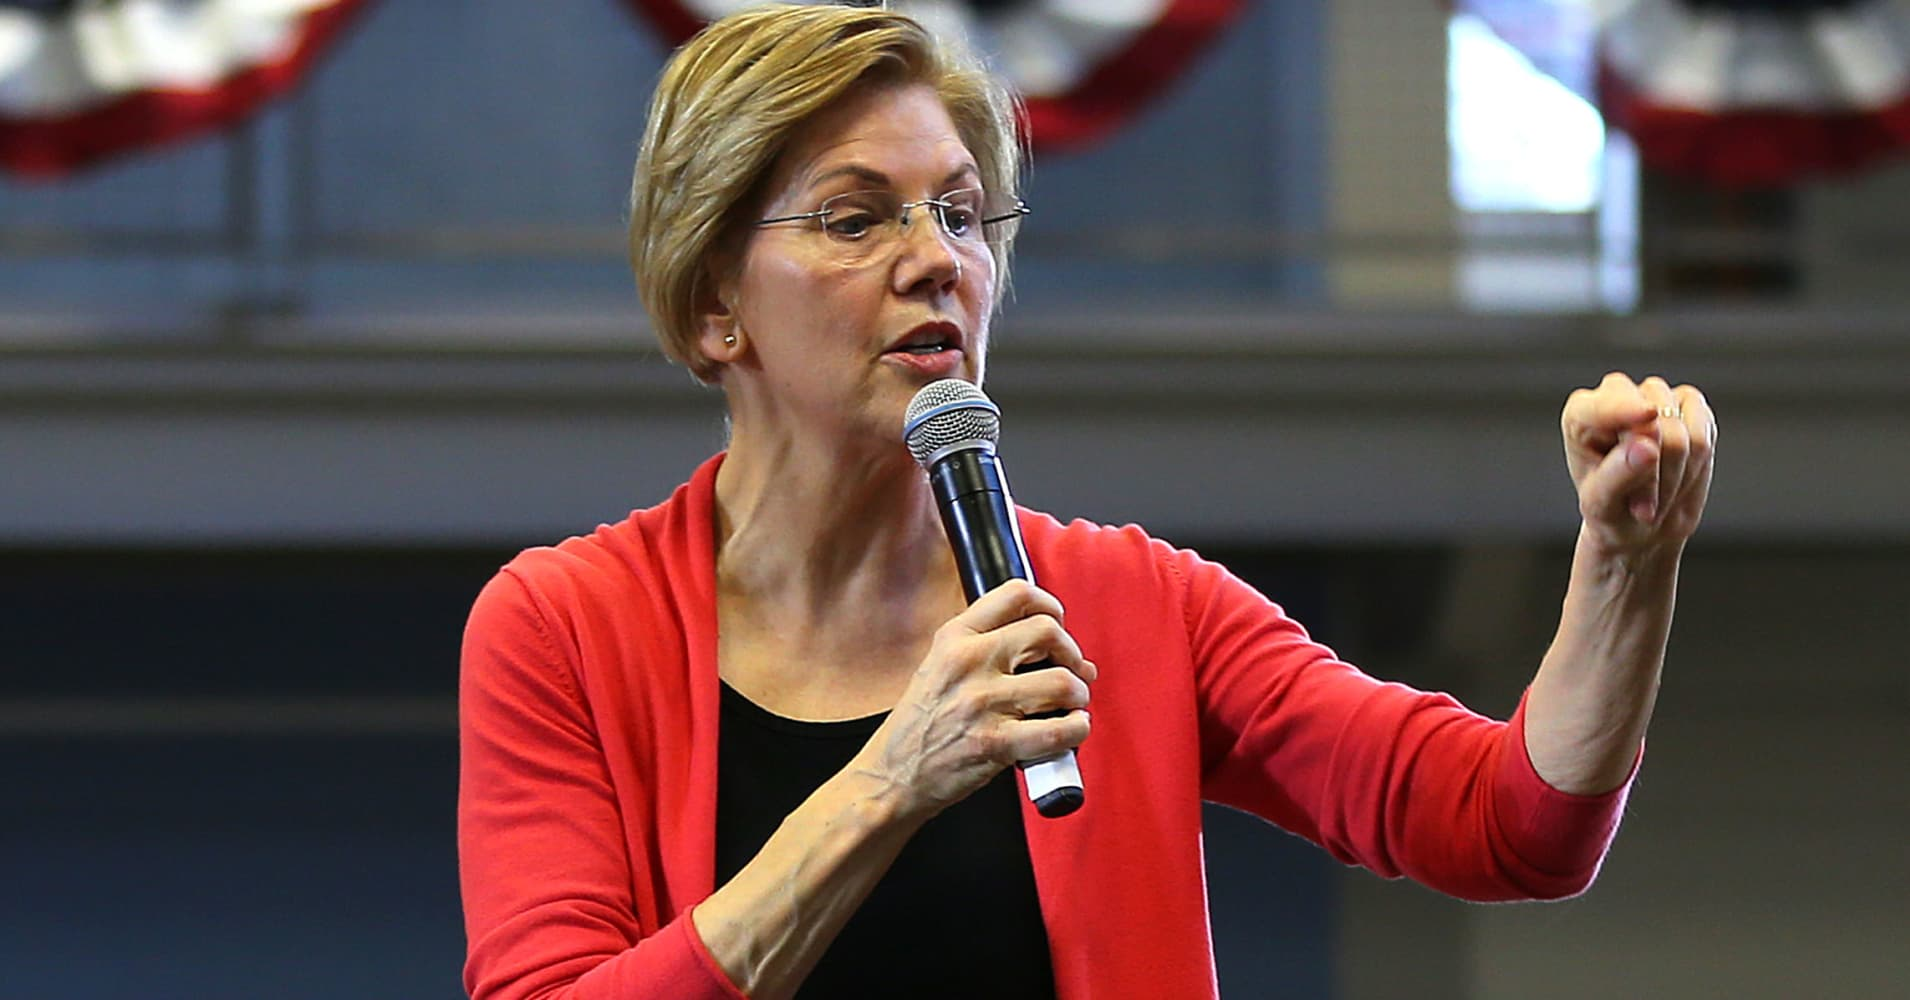 Elizabeth Warren wants to use her wealth tax to wipe out Americans' college debt and pay for tuition